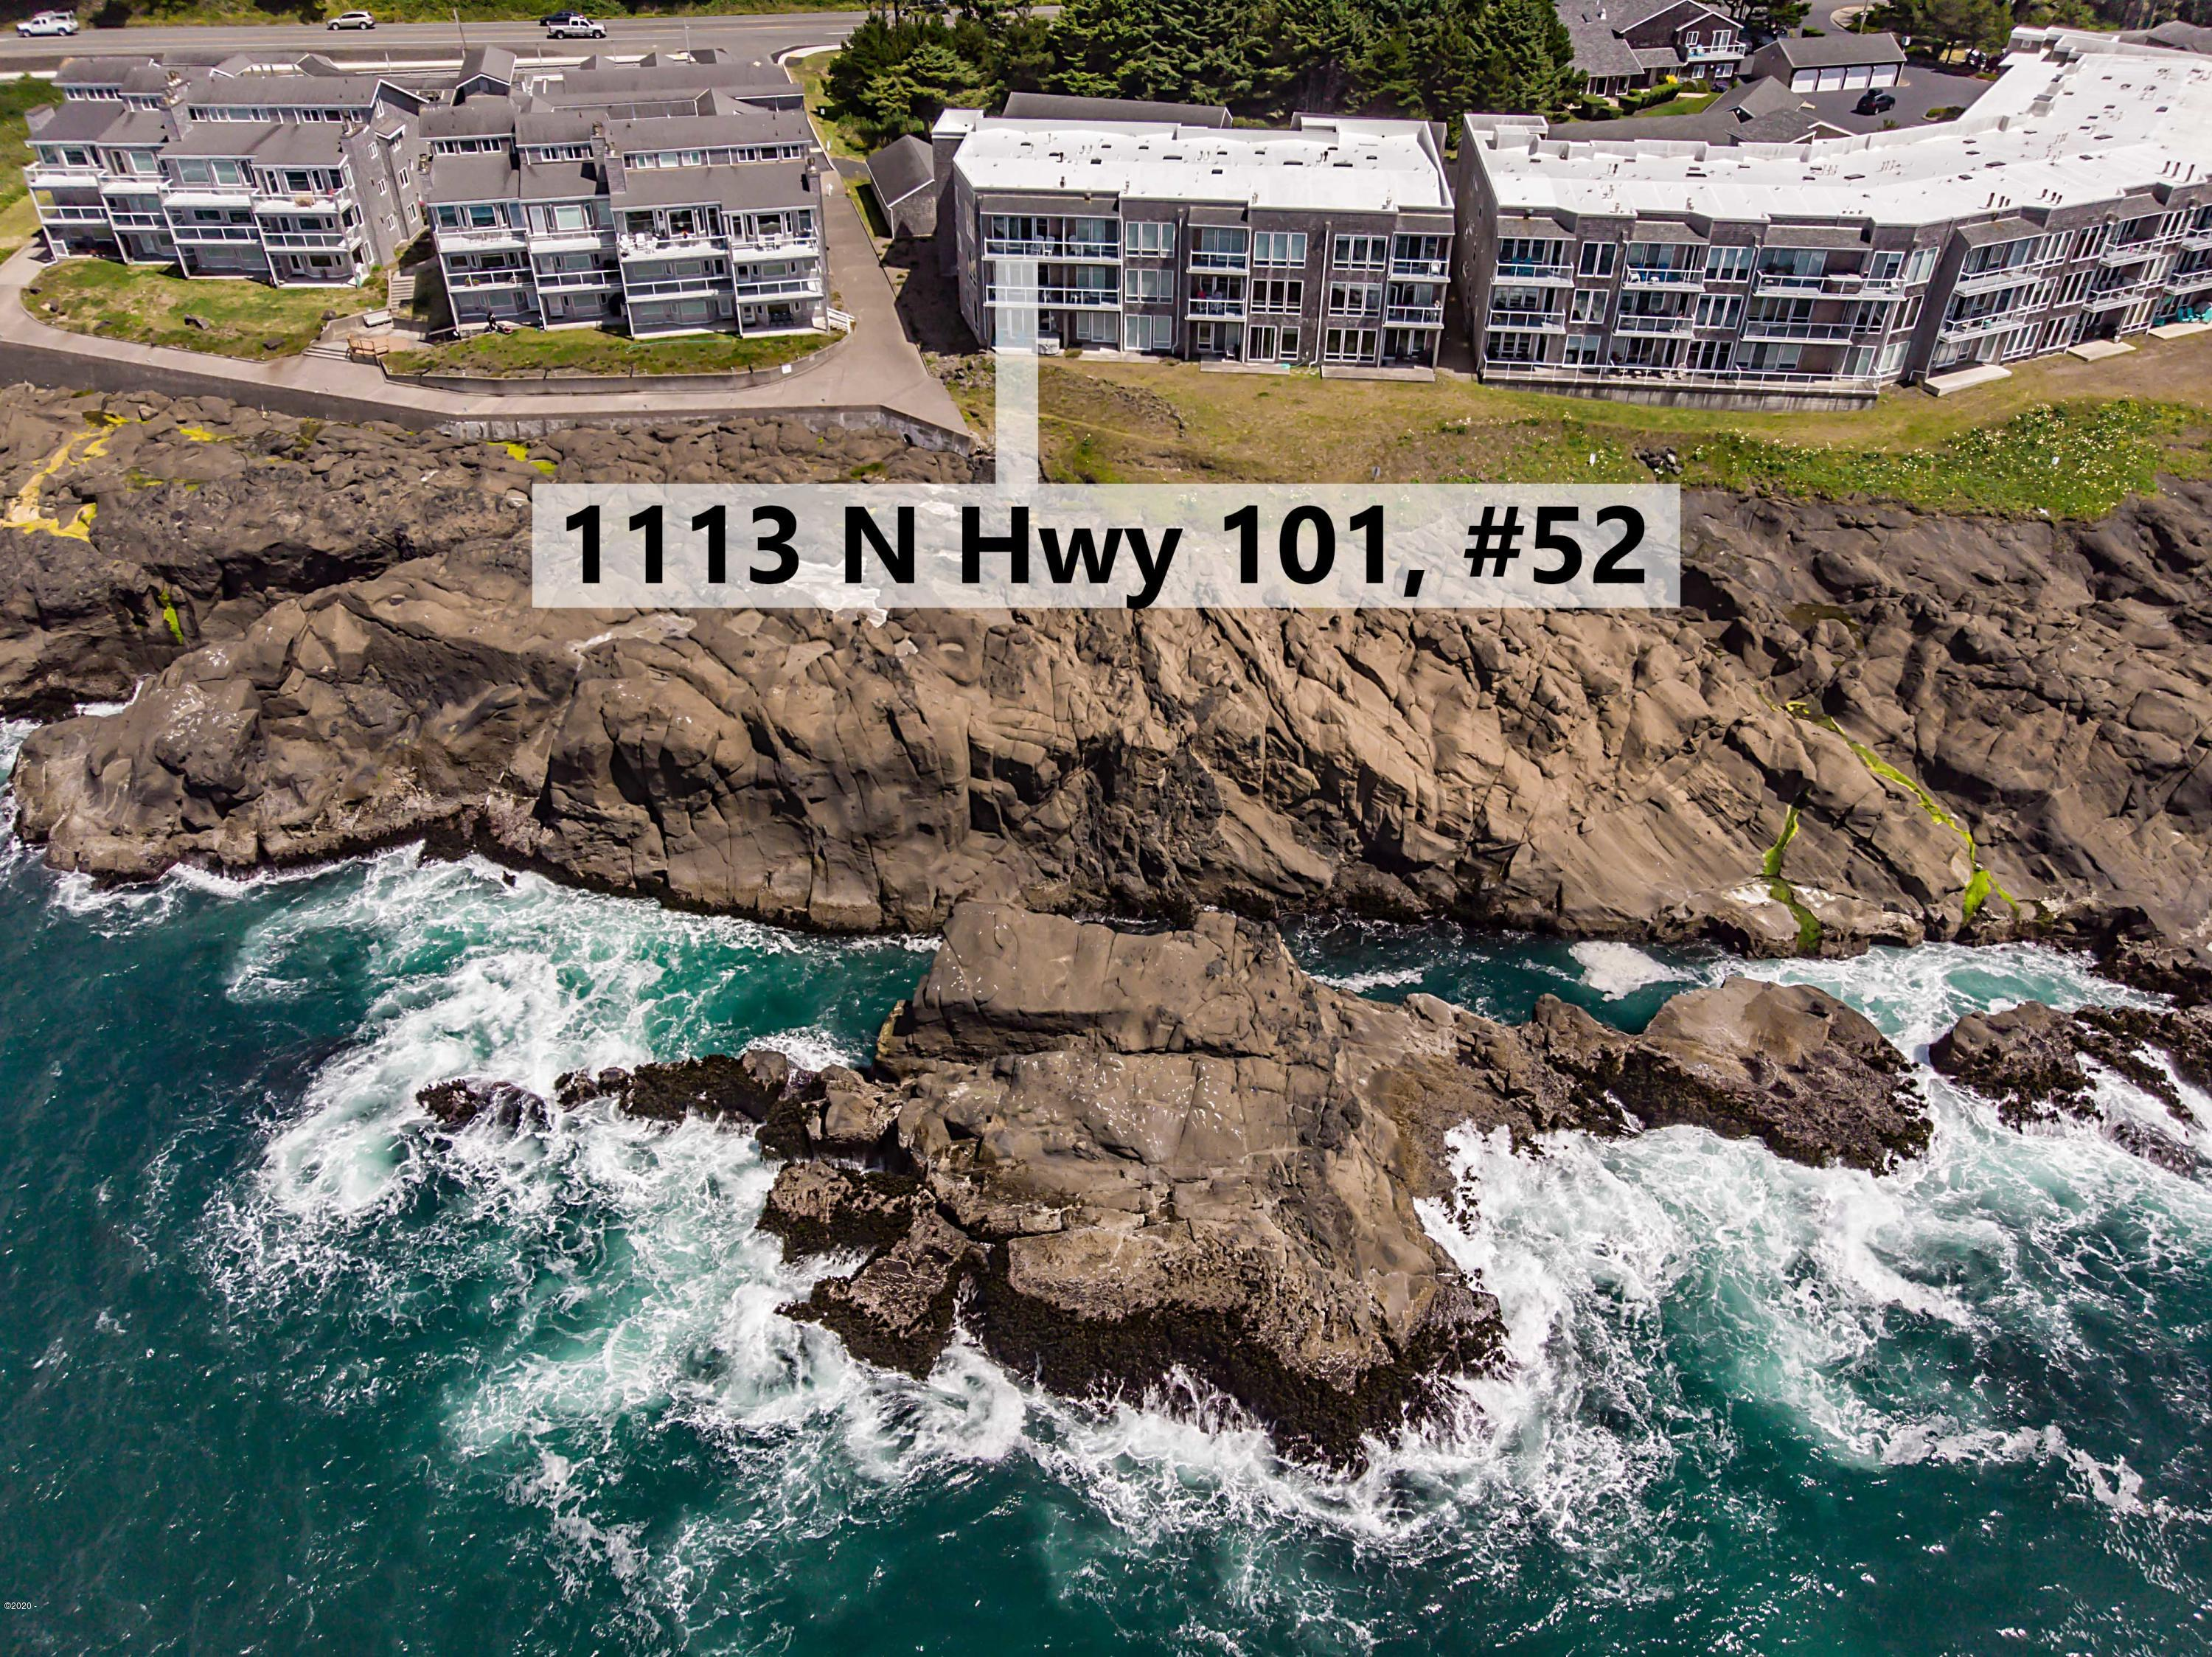 1113 N Highway 101, 52, Depoe Bay, OR 97341